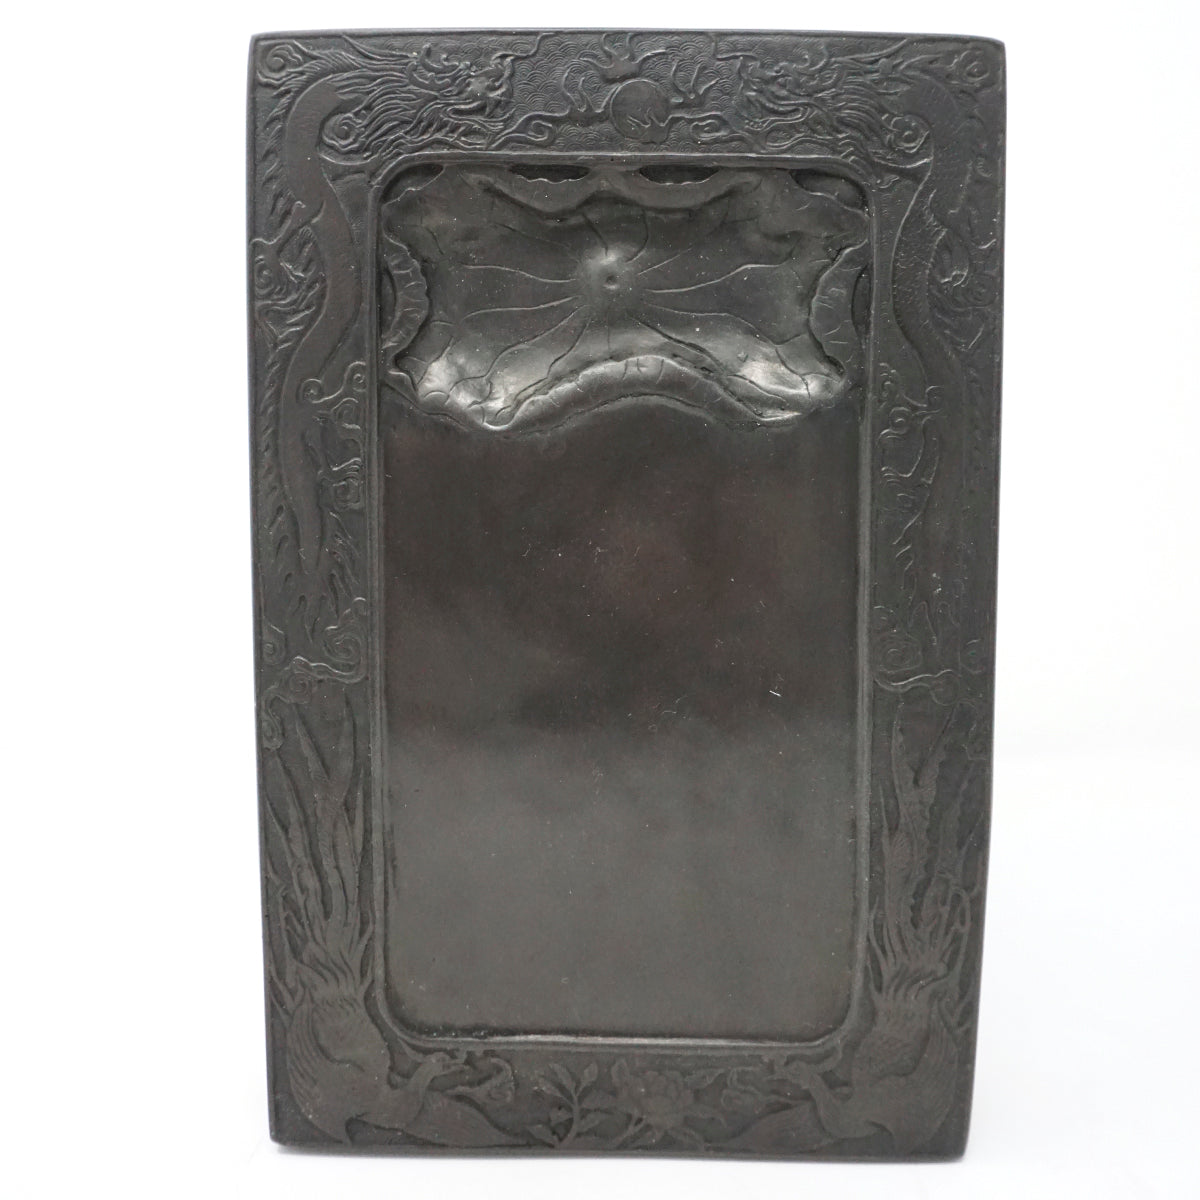 Chinese Ink Stone with Dragon and Letters Design